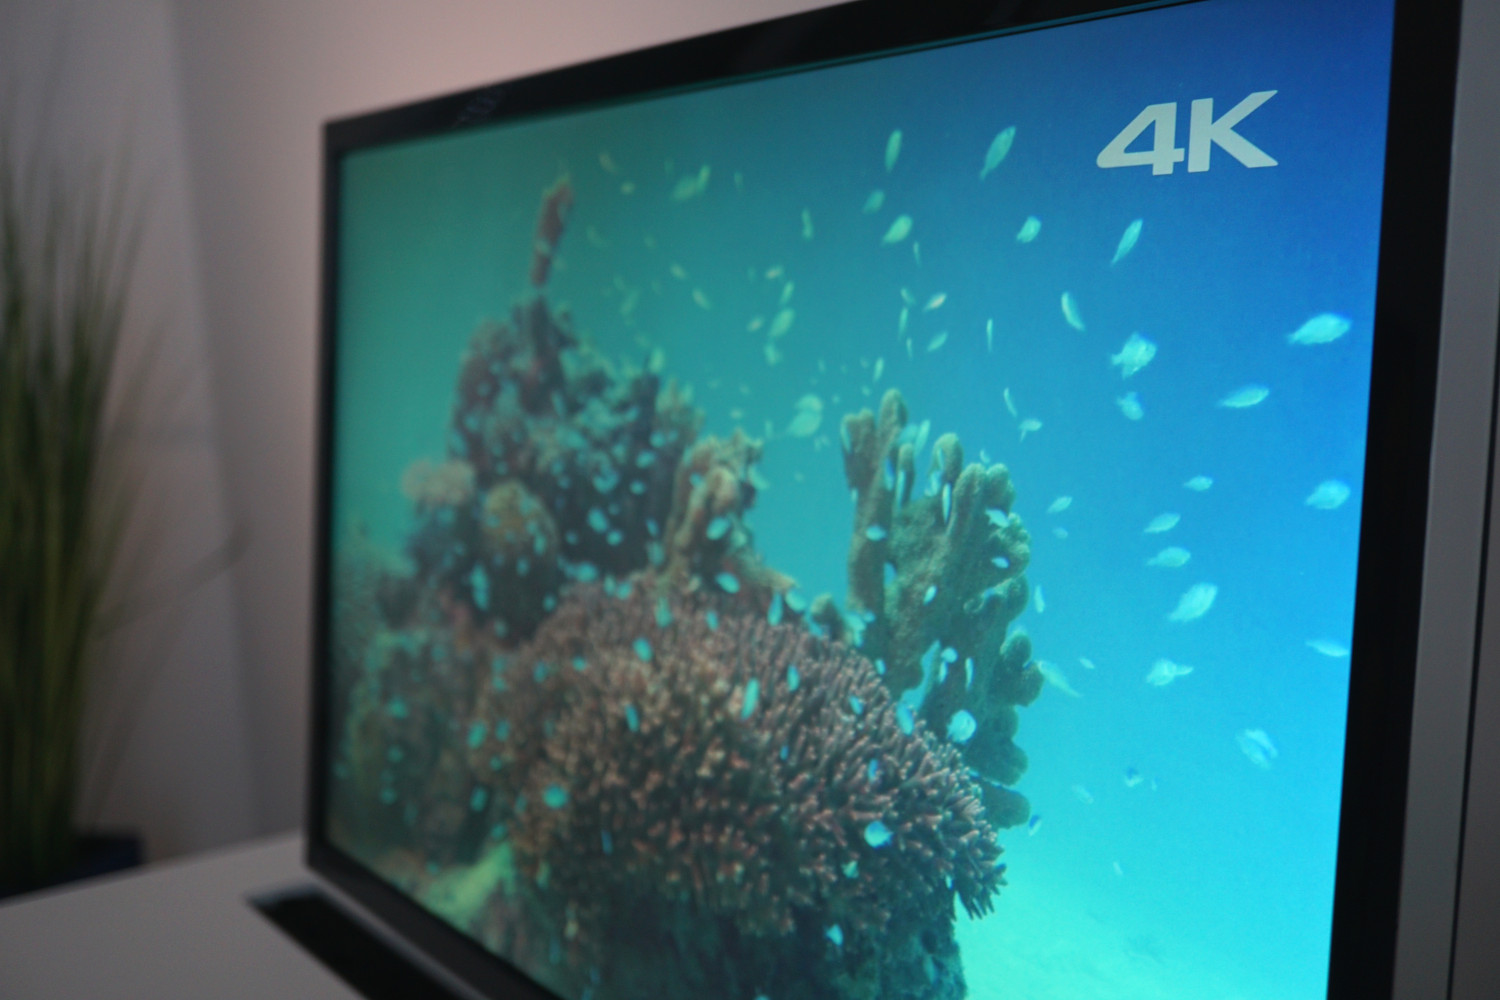 What is the difference between Full HD, UHD and 4K?